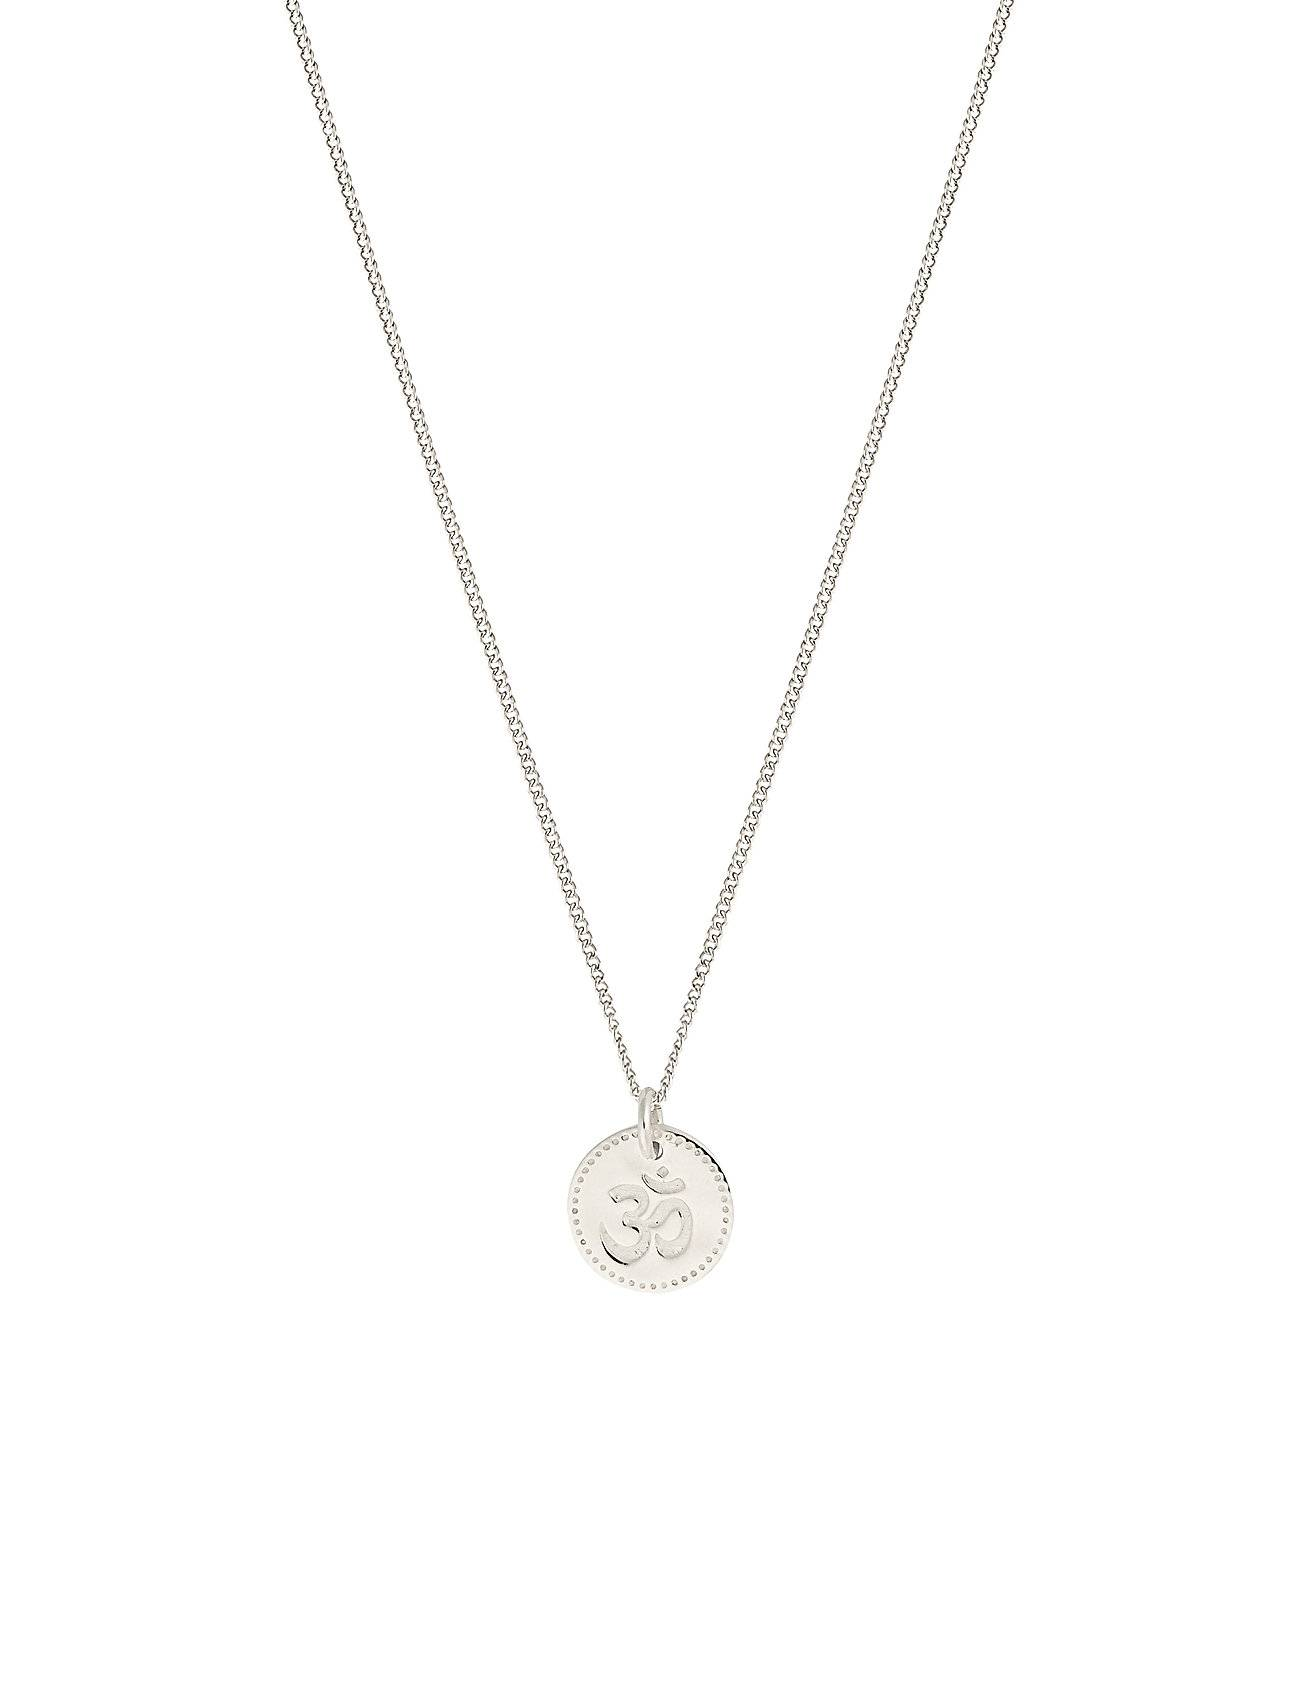 Syster P Karma Necklace Namaste Accessories Jewellery Necklaces Dainty Necklaces Hopea Syster P